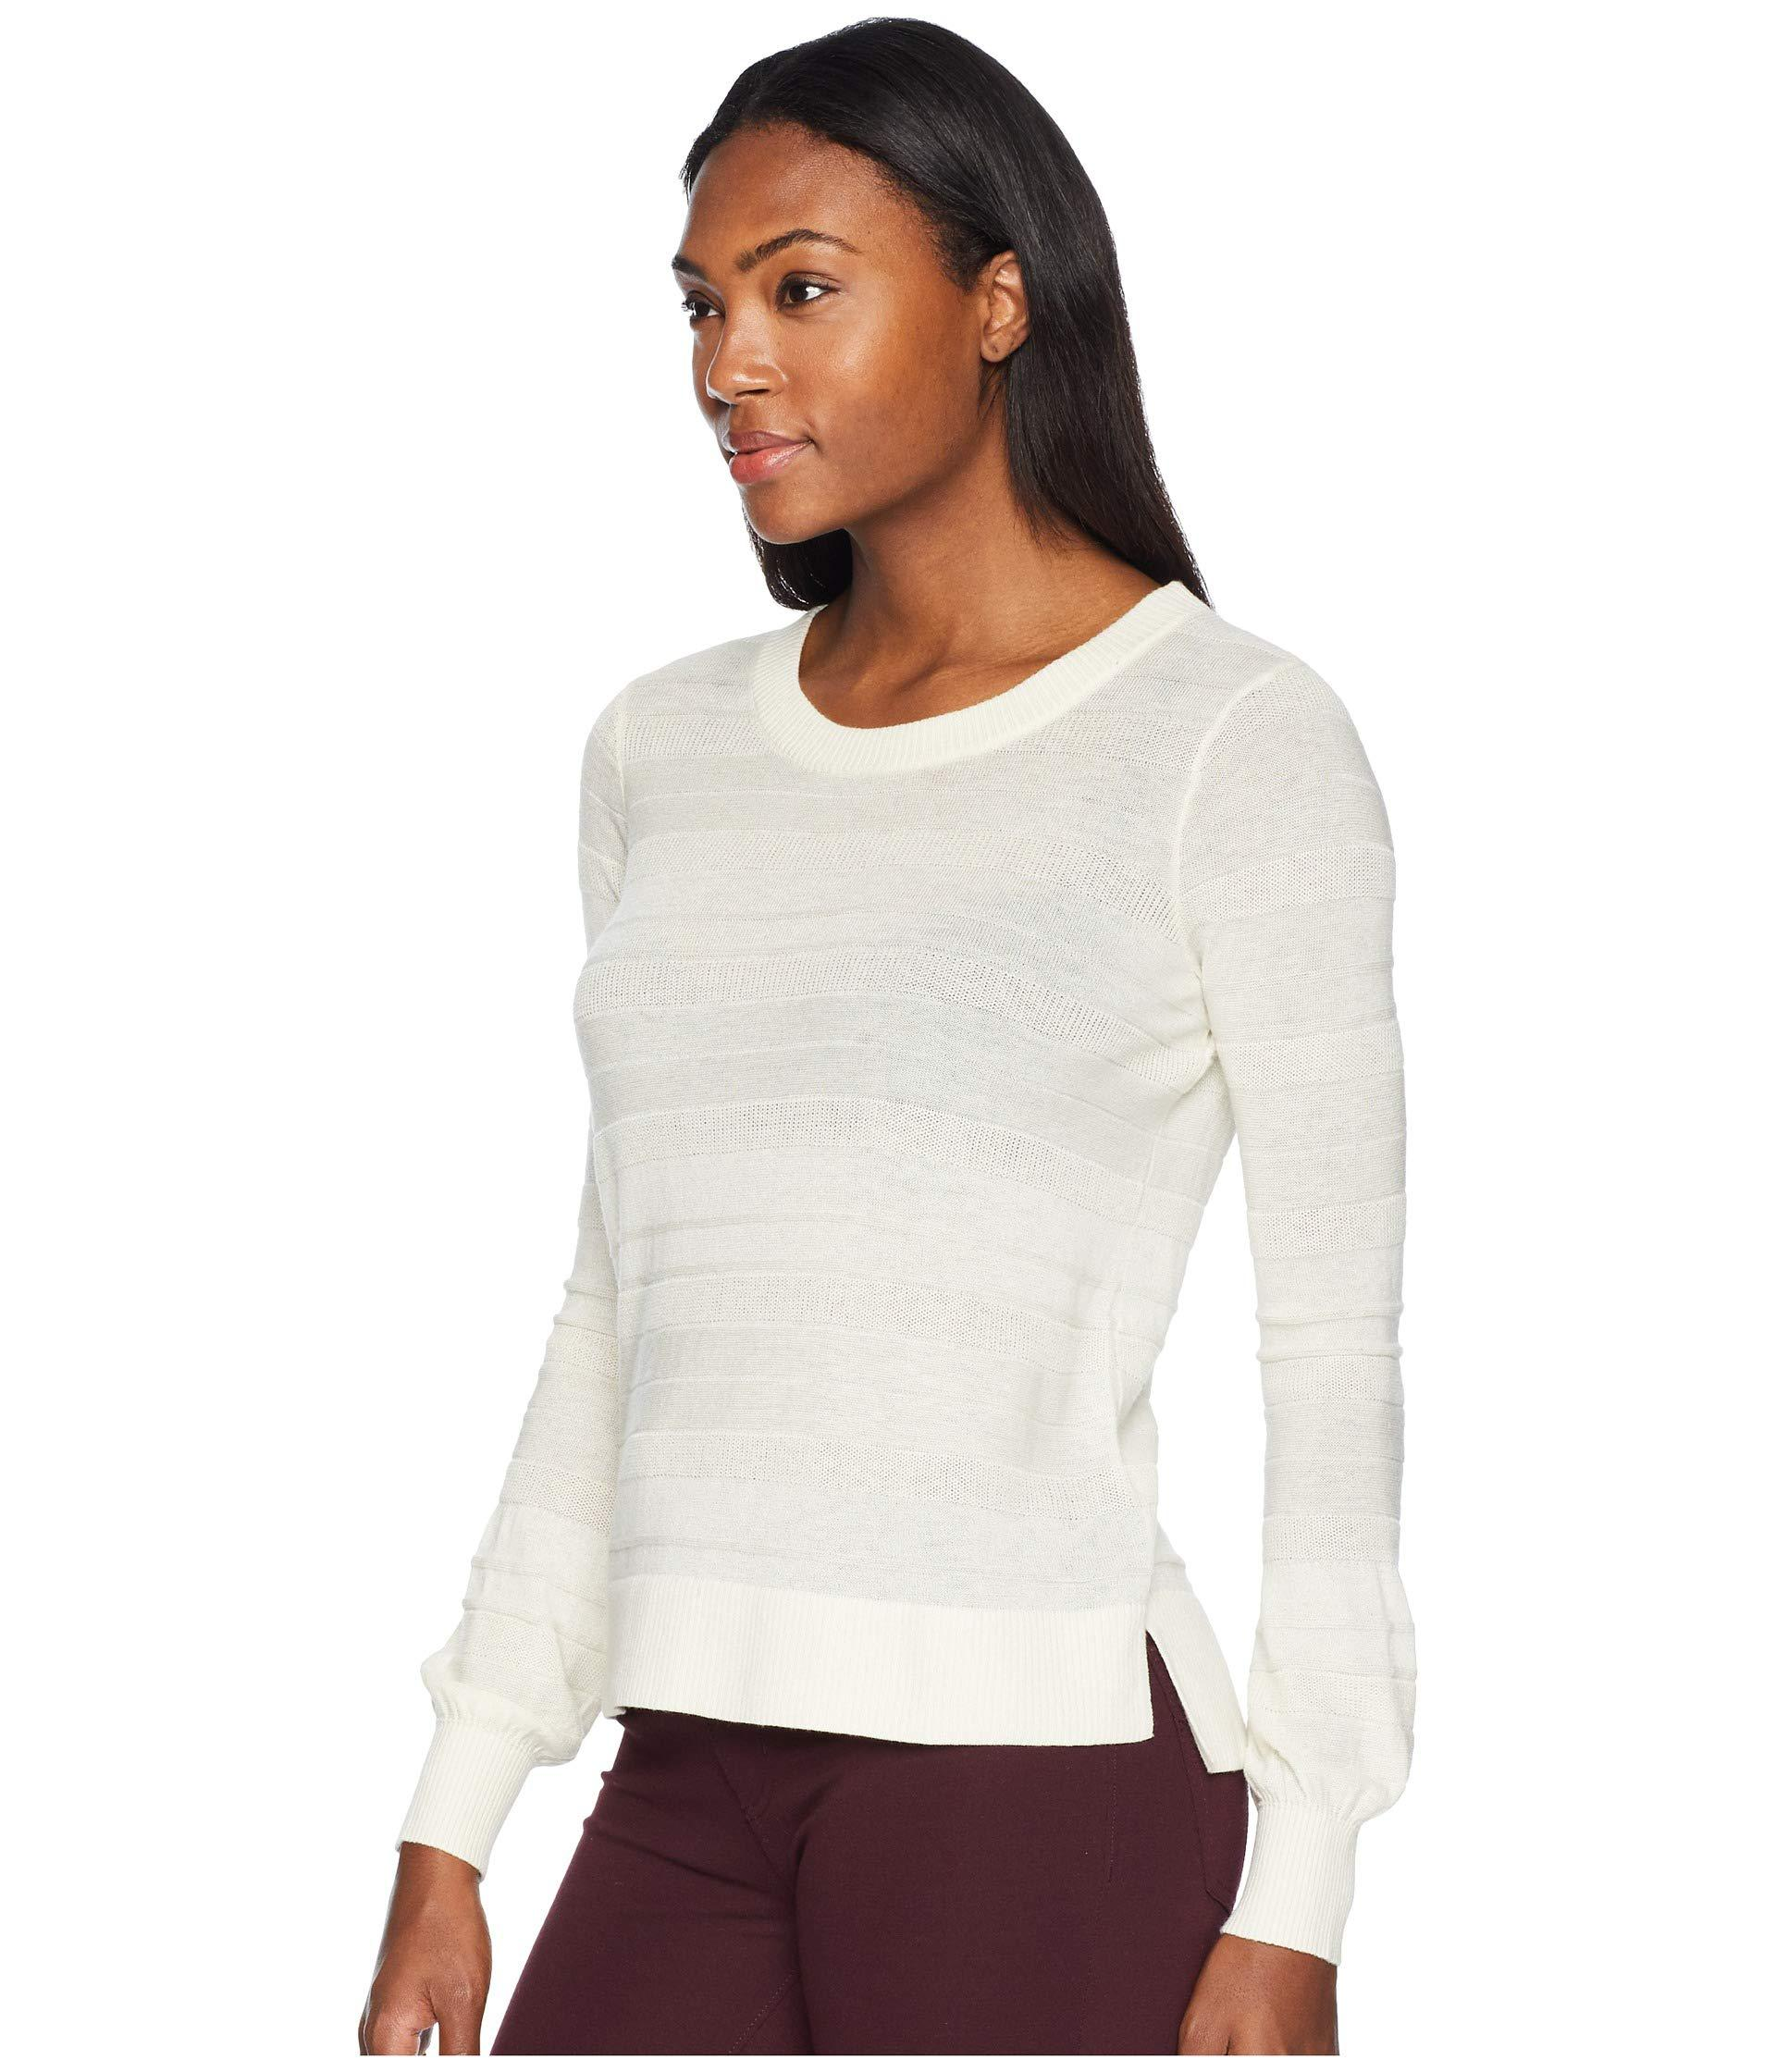 Lyst - Toad Co Cambria Crew Sweater (salt) Women s Sweater in White 76d8db874